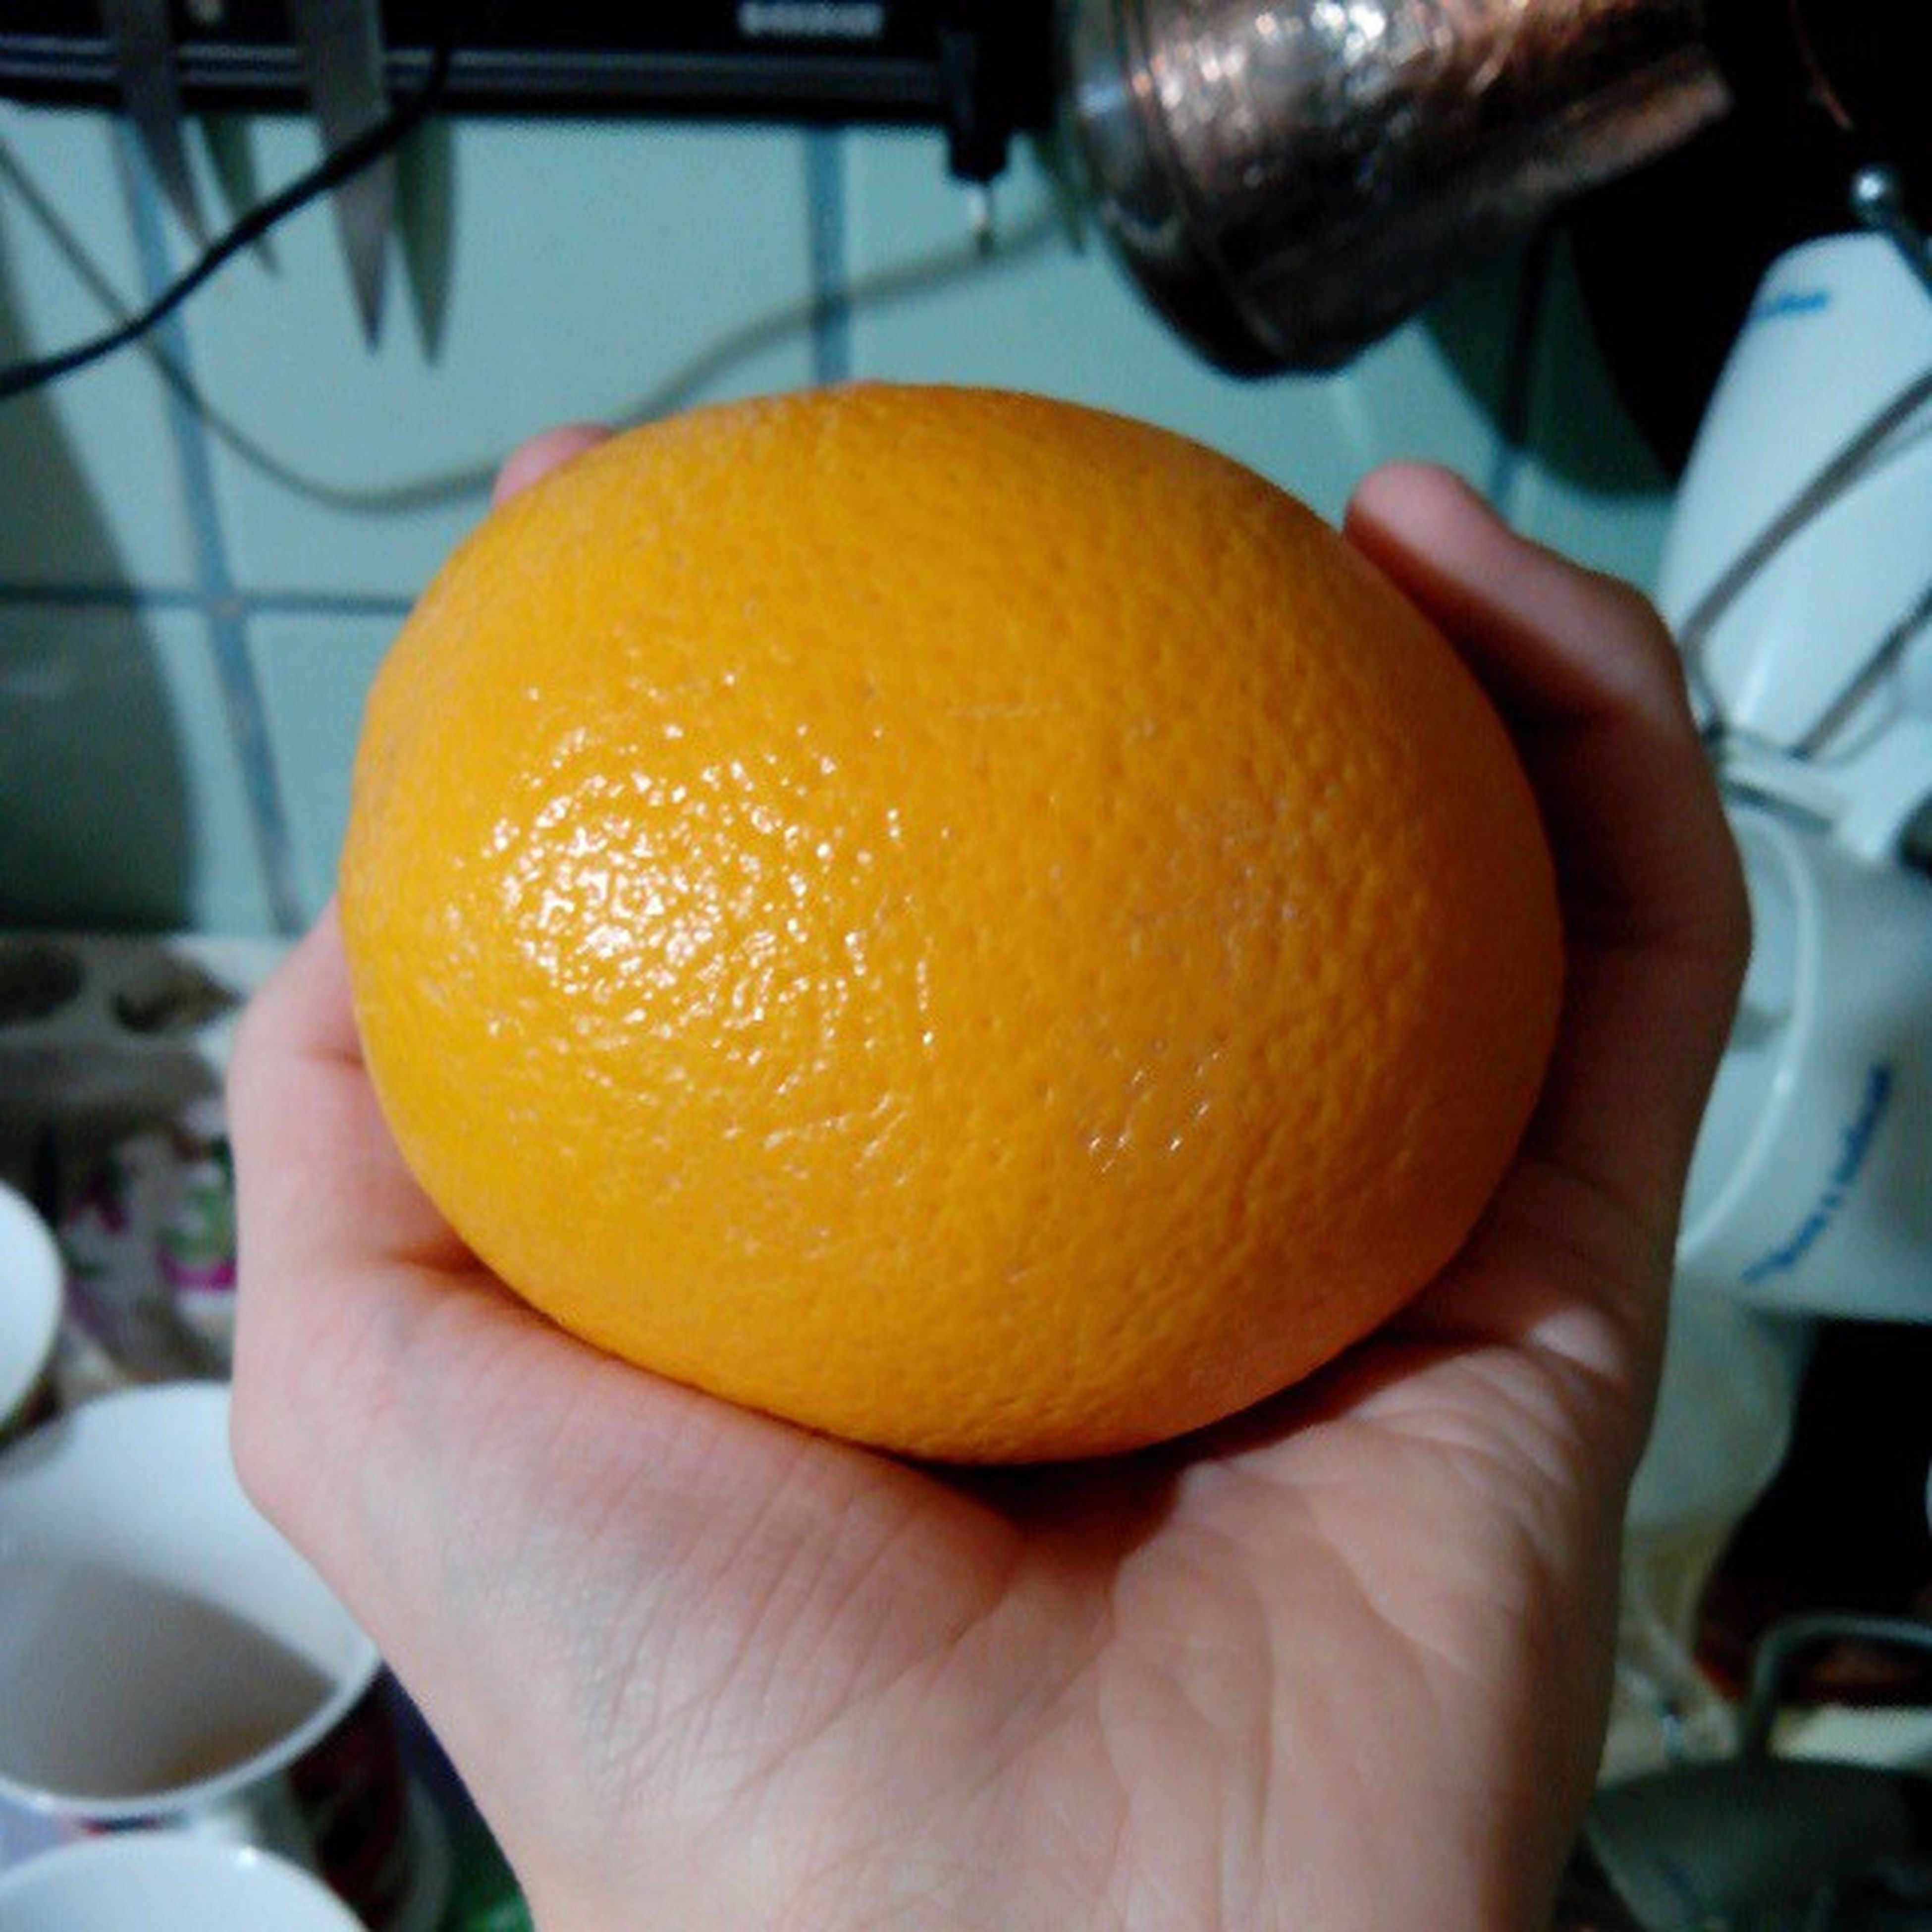 person, food and drink, food, holding, part of, freshness, cropped, unrecognizable person, human finger, personal perspective, close-up, healthy eating, fruit, focus on foreground, lifestyles, orange - fruit, indoors